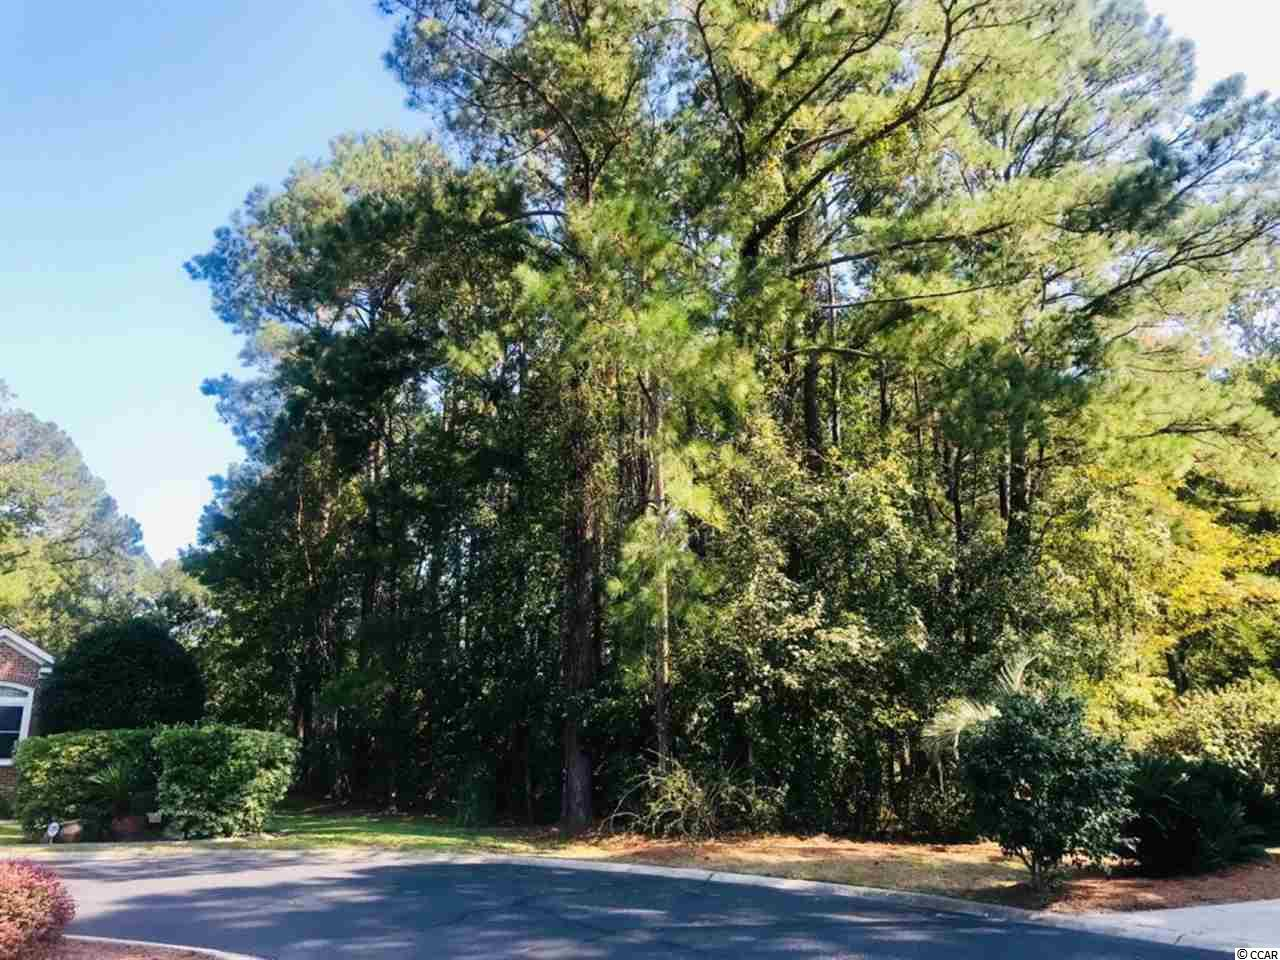 Build your custom dream-home on this golf course lot inside the Indigo Creek community. Situated on a cul-de-sac with beautiful views overlooking Fairway 9 on the Indigo Creek golf course. Enjoy low HOA fees that include a community pool. Close to shops, the popular Murrells Inlet marsh walk, restaurants, entertainment, and minutes to the beach.